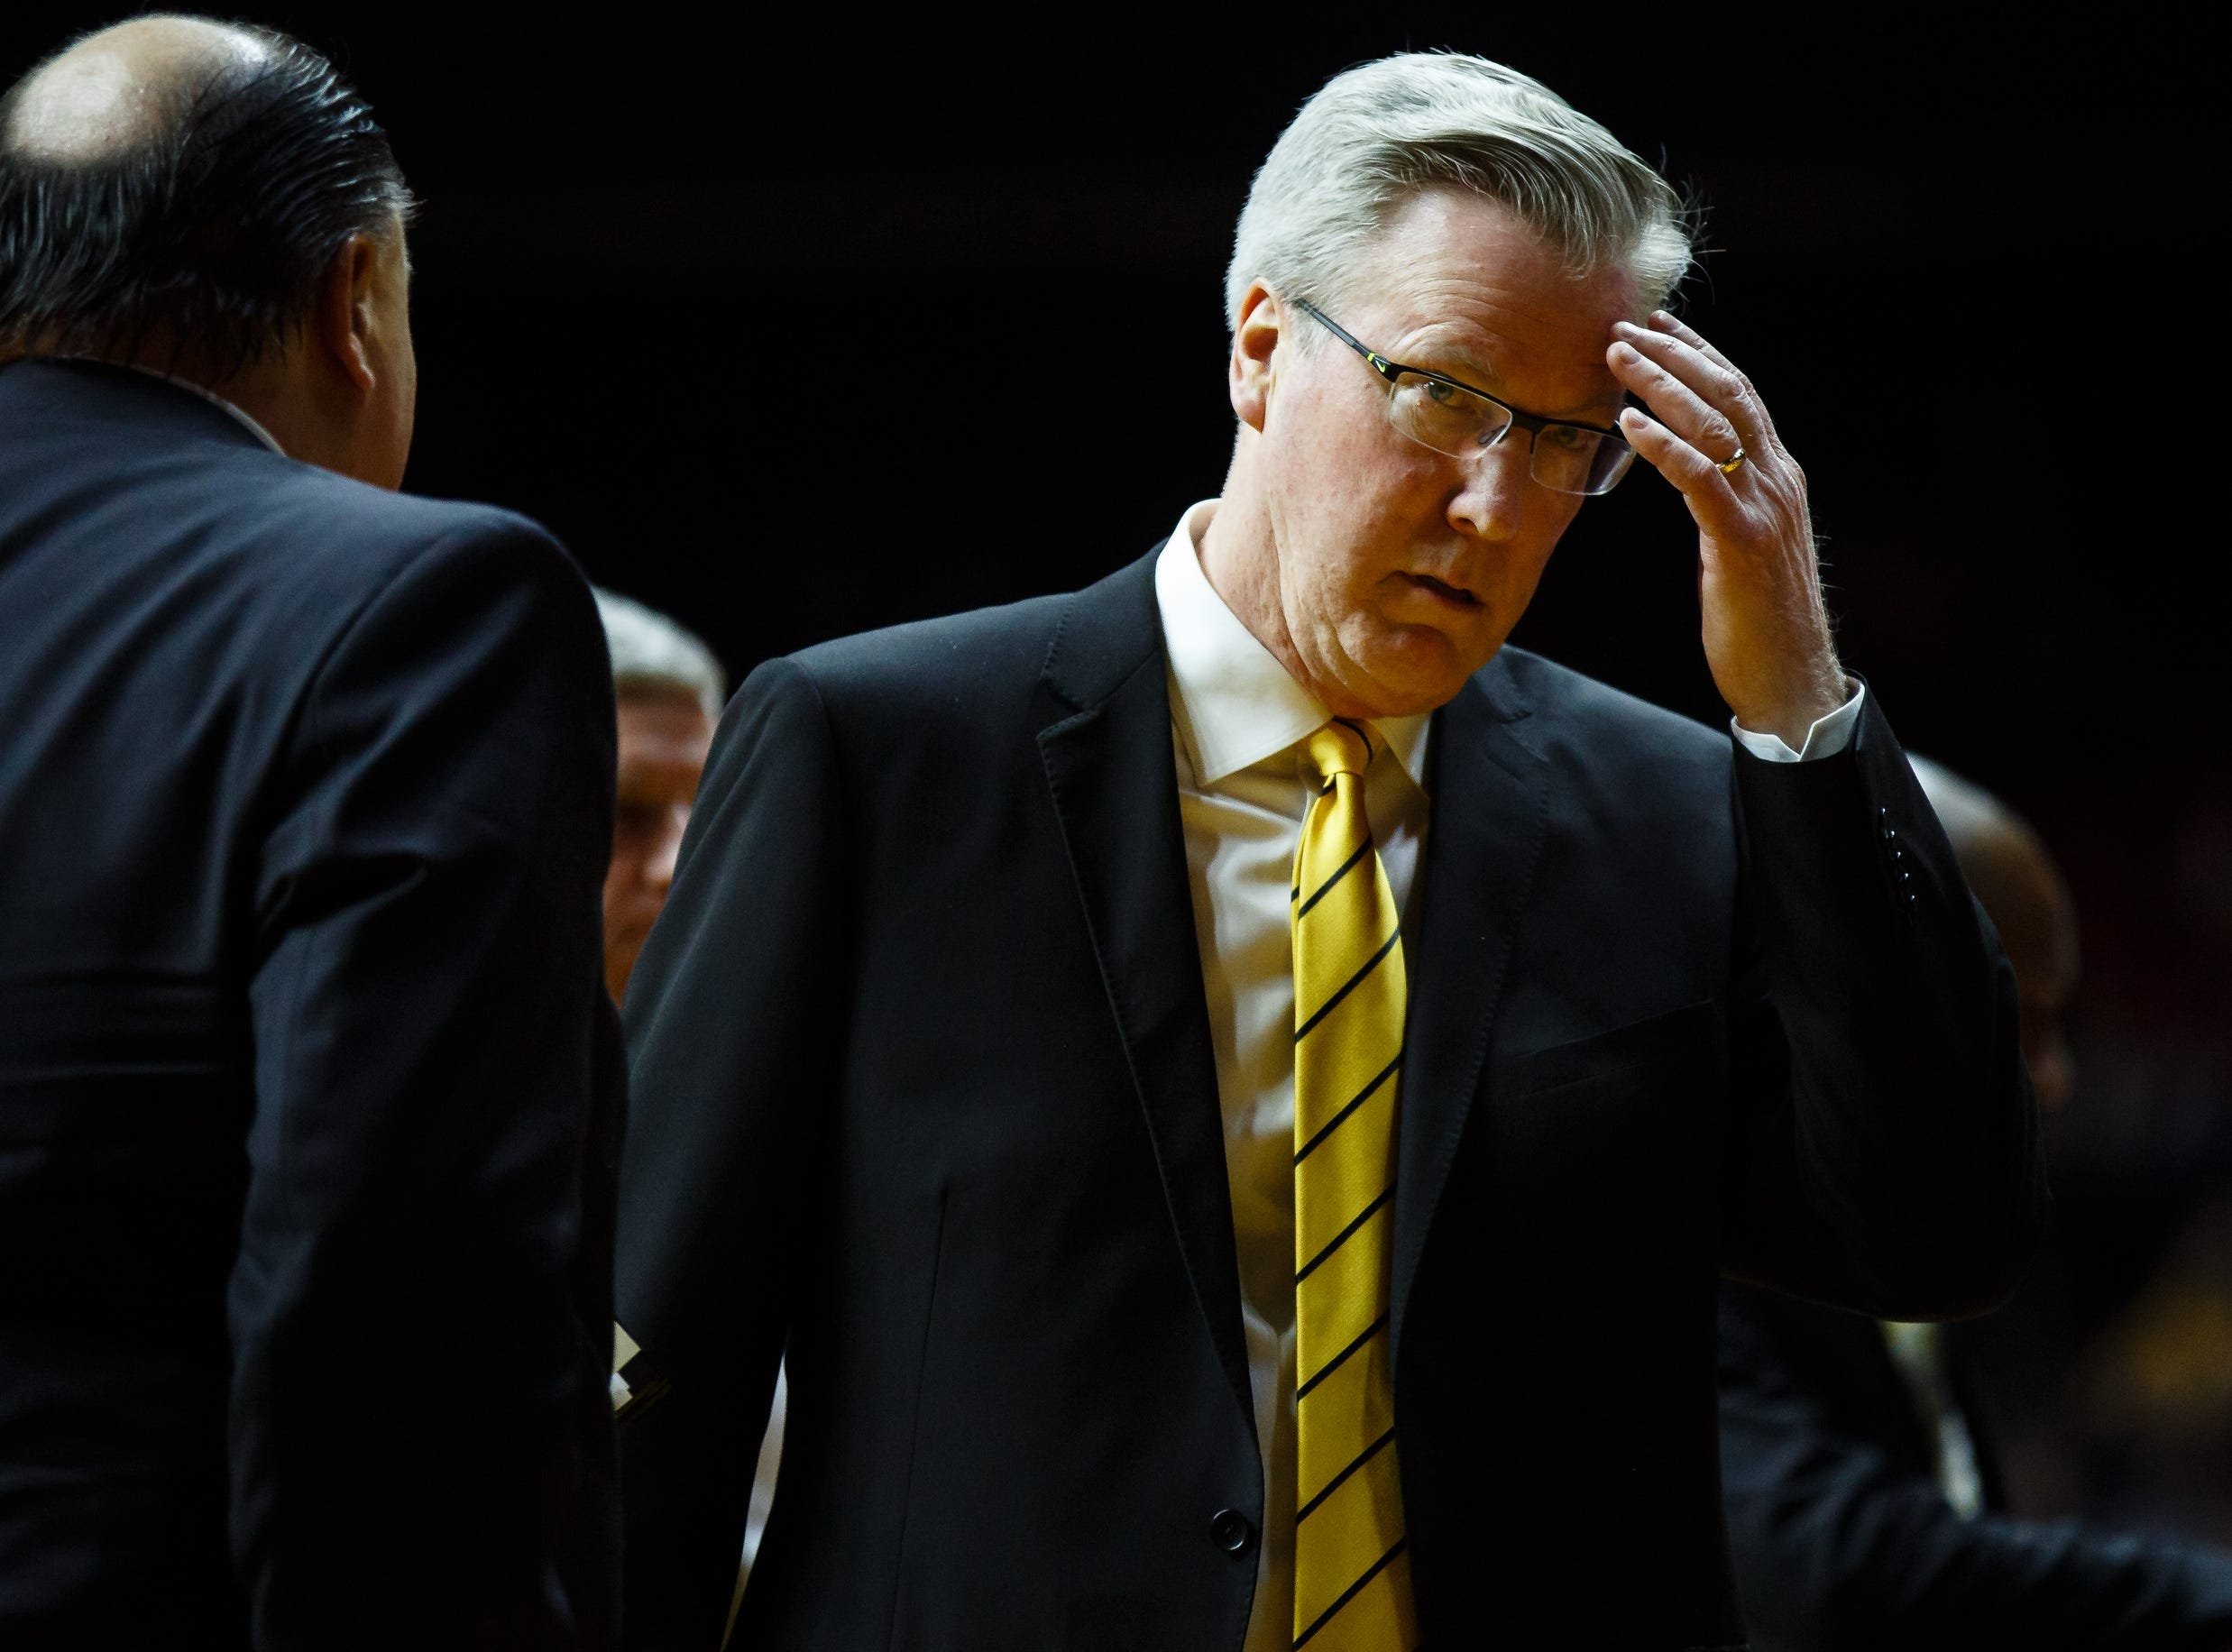 Iowa head coach Fran McCaffery talks to his coaching staff during their basketball game at the Hy-Vee Classic on Saturday, Dec. 15, 2018, in Des Moines. Iowa would go on to defeat UNI 77-54.